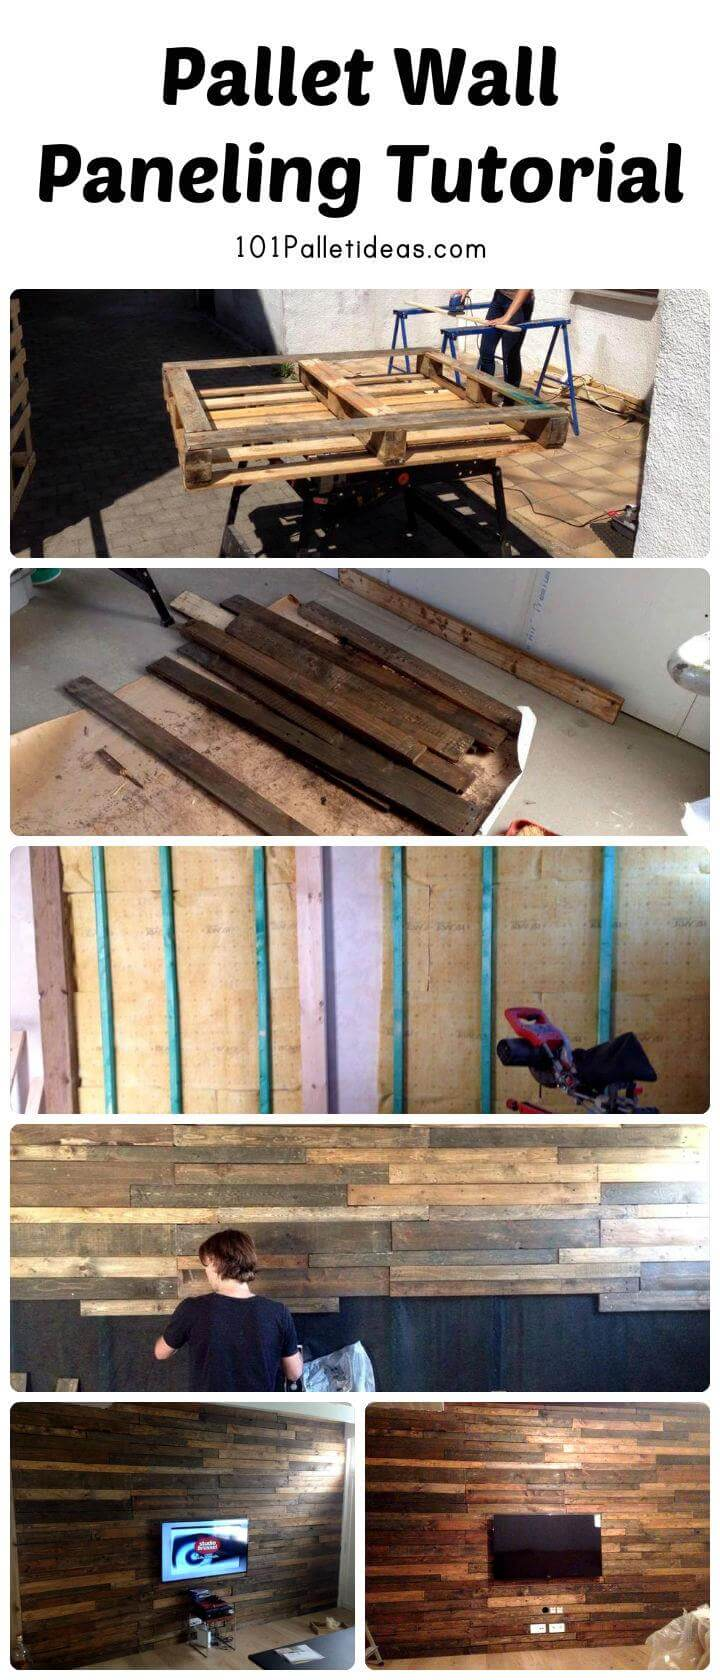 Diy Pallet Bathroom Wall Paneling: Pallet Wall Tutorial